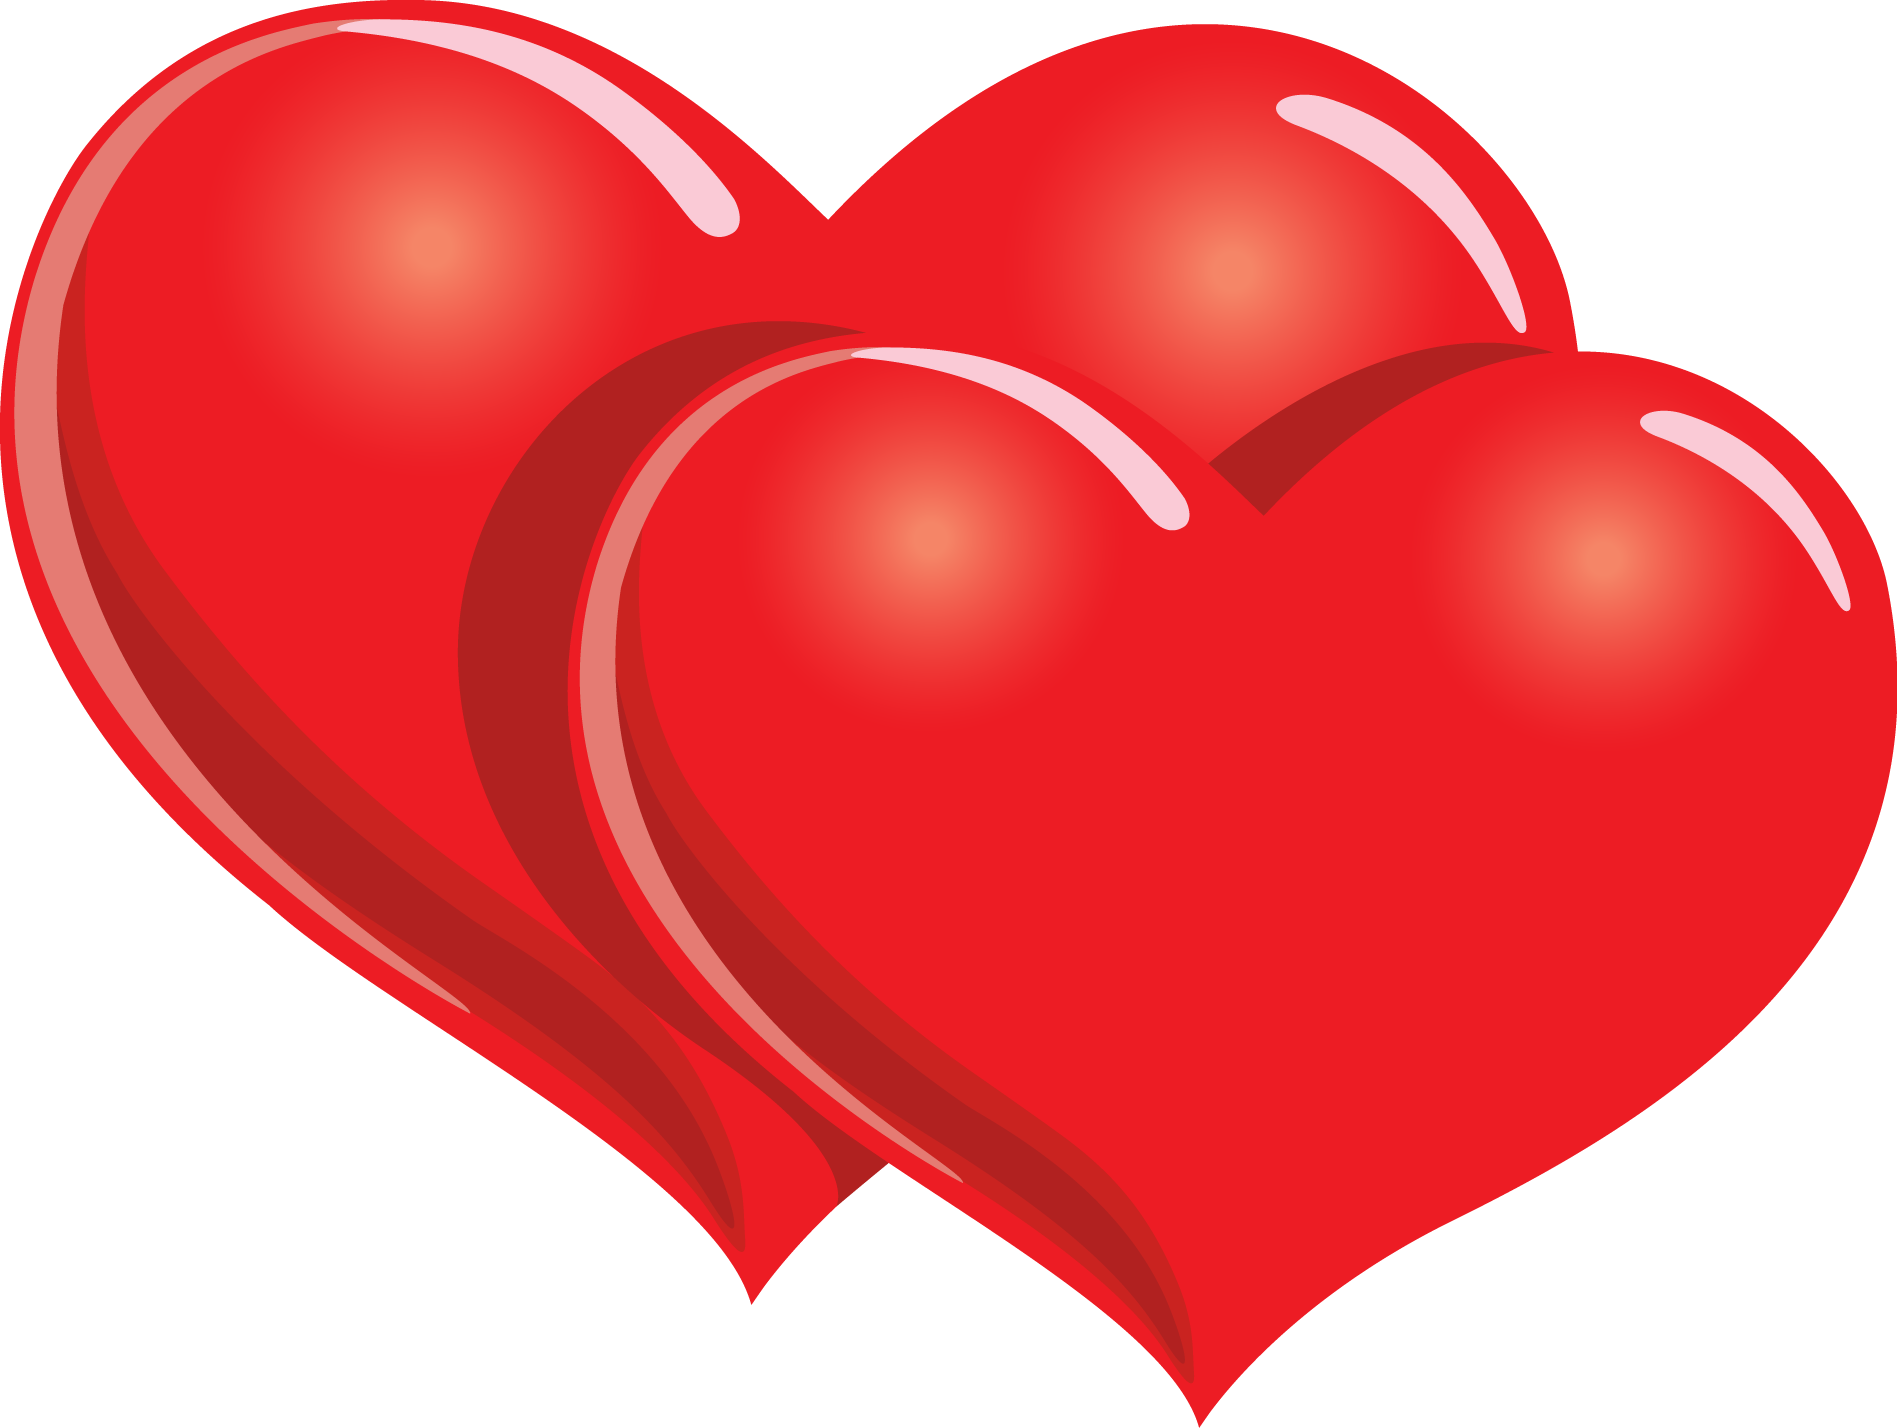 Red hearts png. Free two clipart download